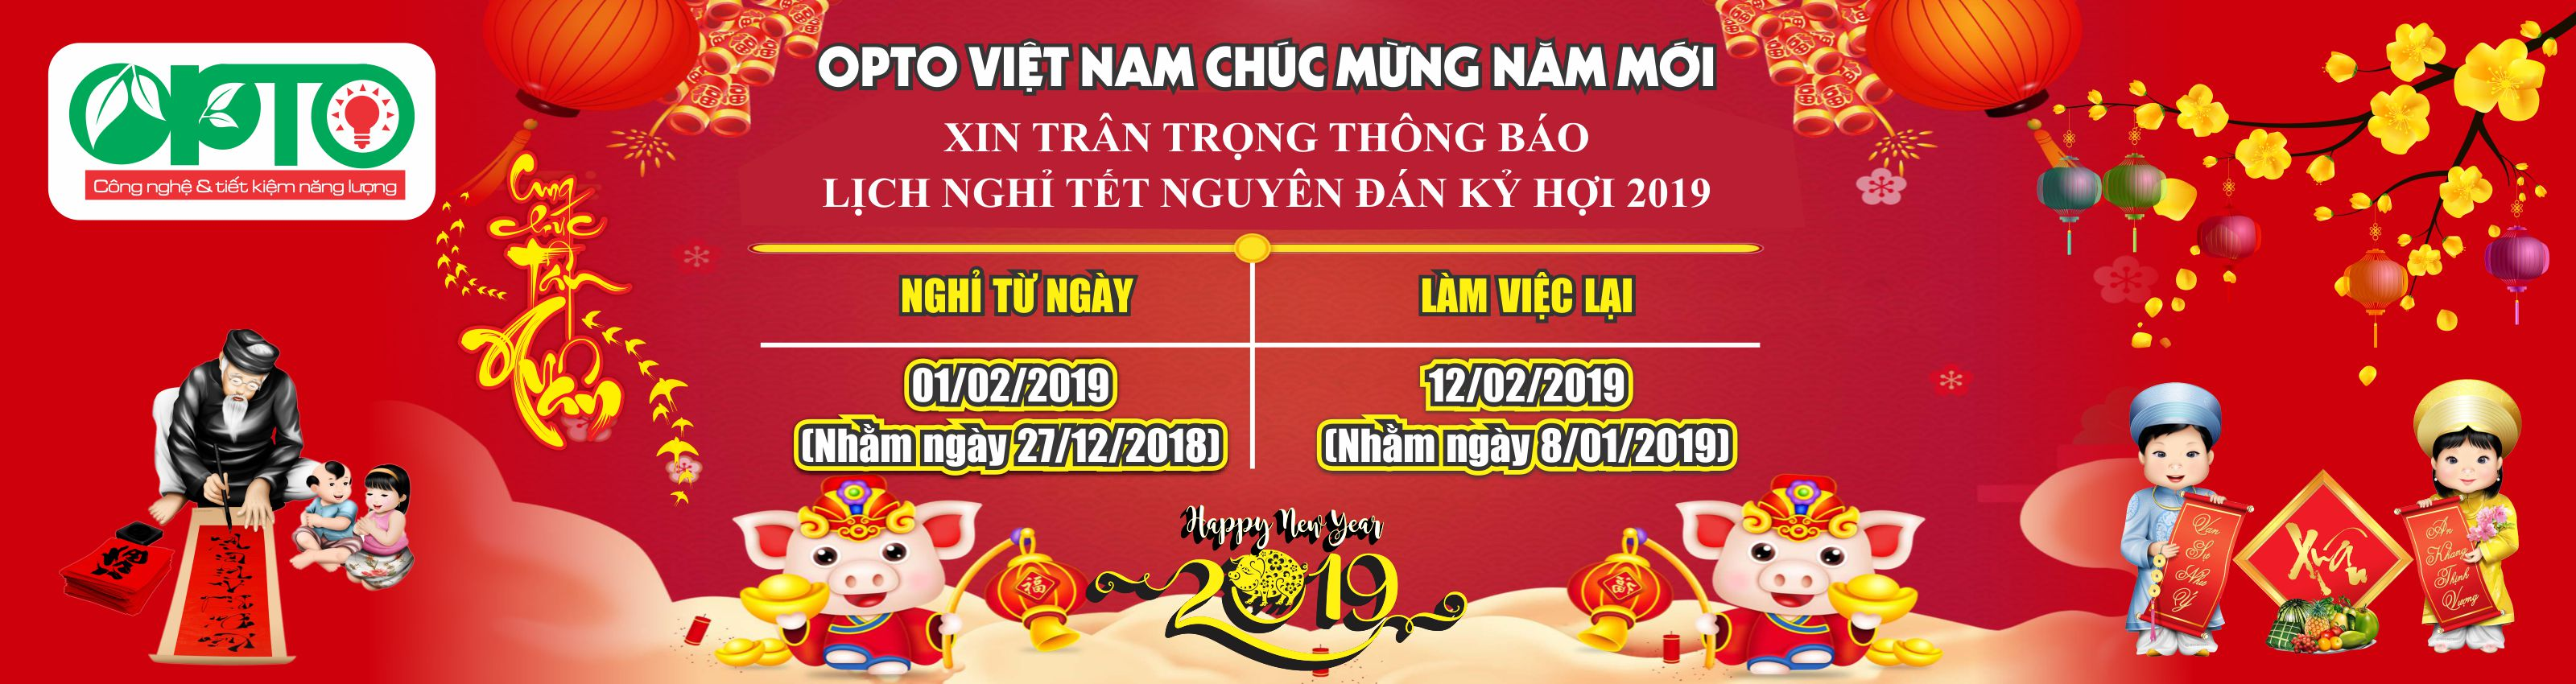 Lịch nghỉ tết Opto